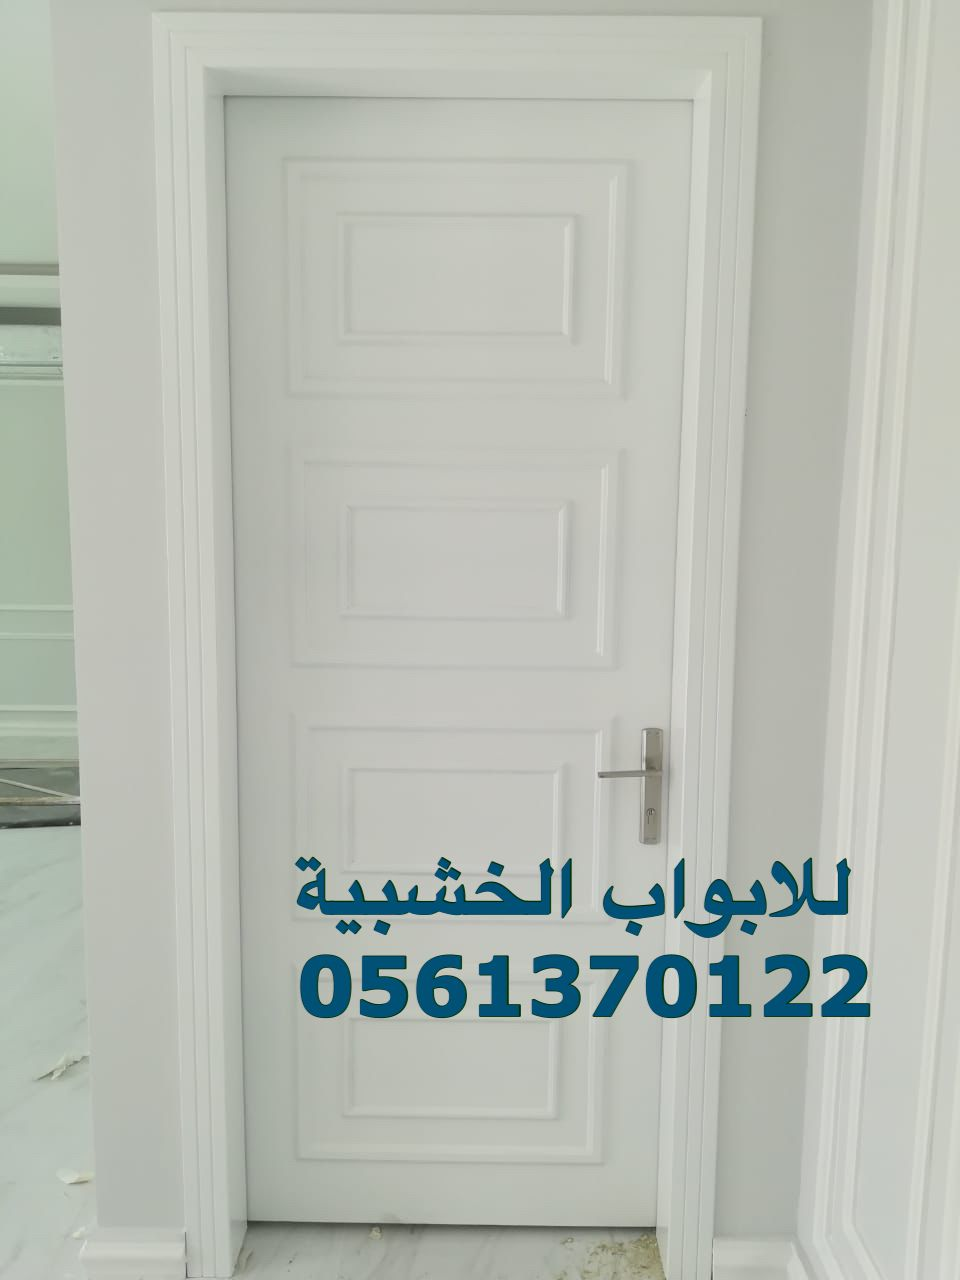 ابواب خشب باب خشب ابواب خشبية Home Decor Decals Doors Interior Home Living Room